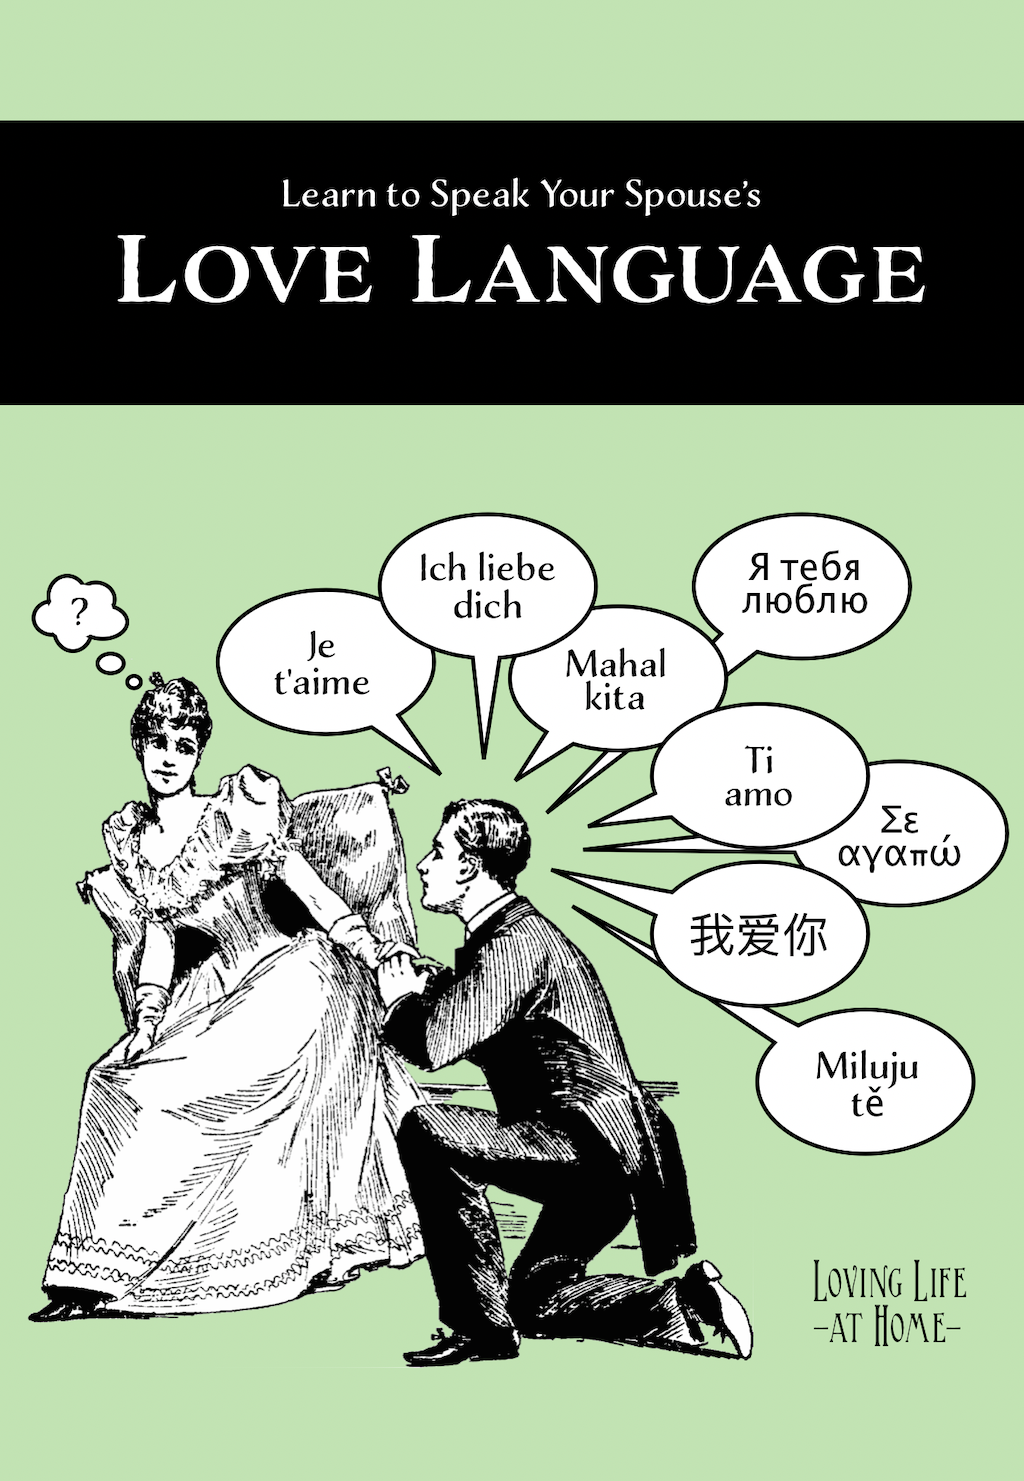 Learn to Speak Your Spouse's Love Language